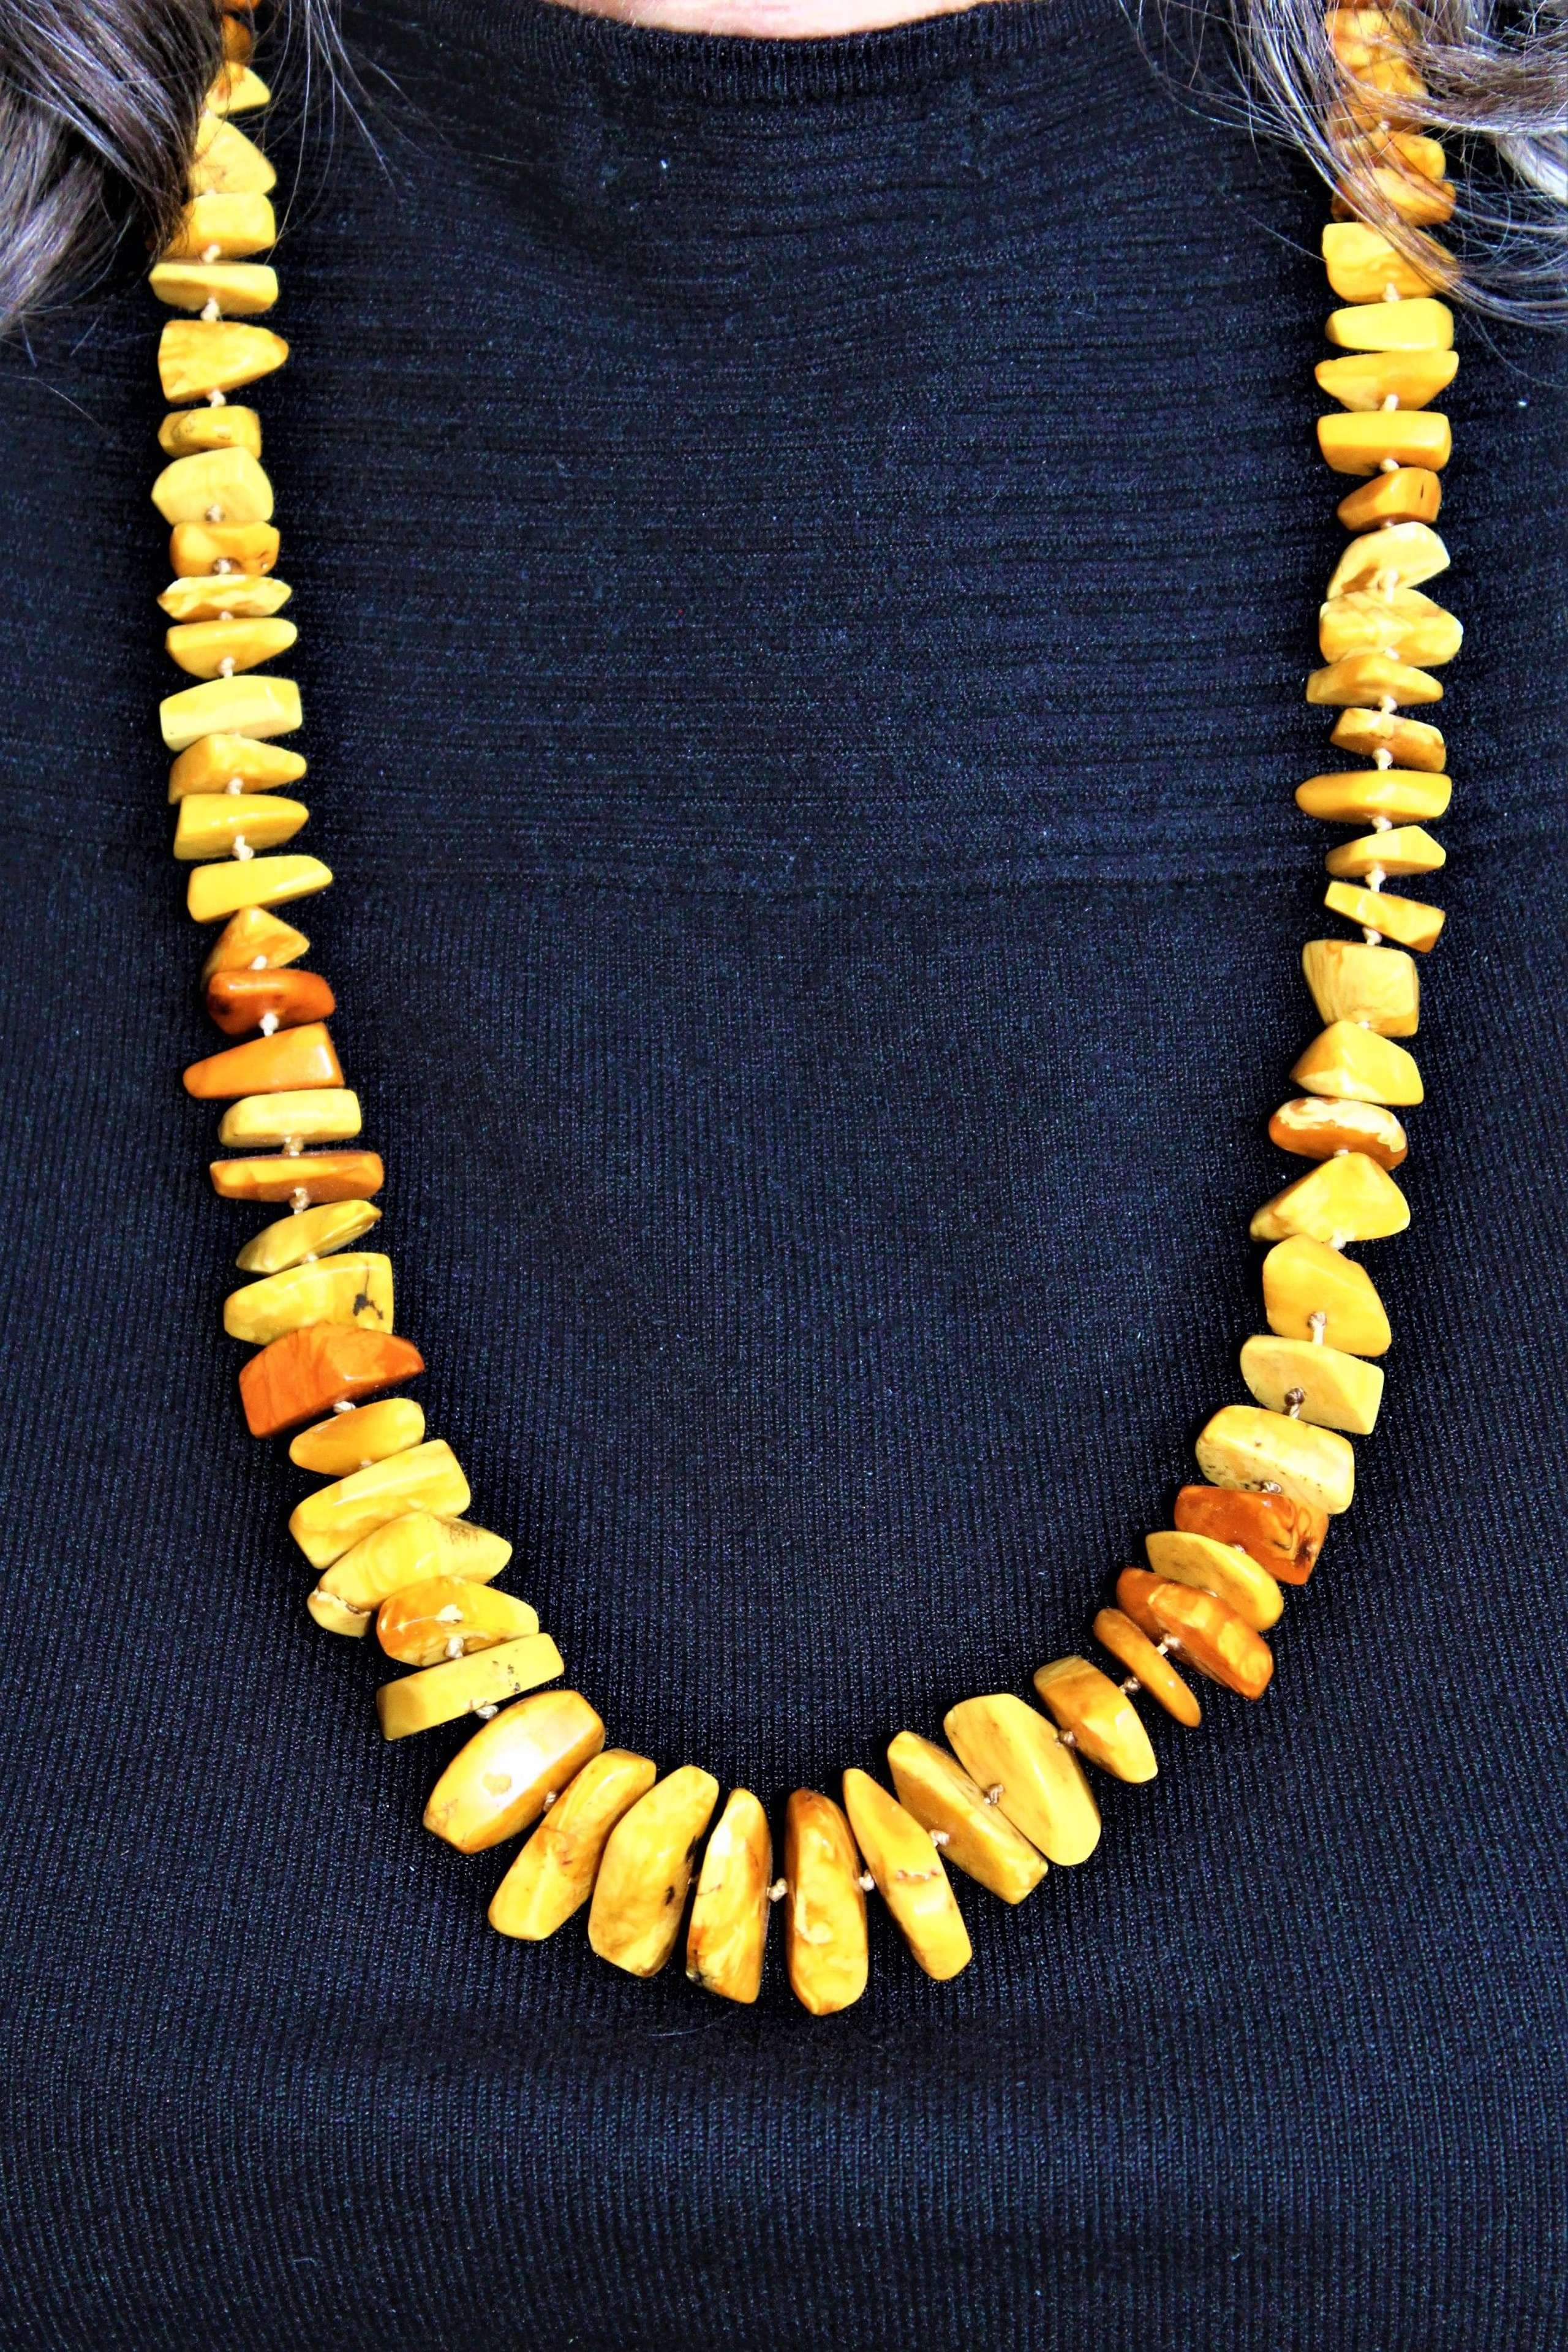 An impressive long and very wearable necklace of natural amber